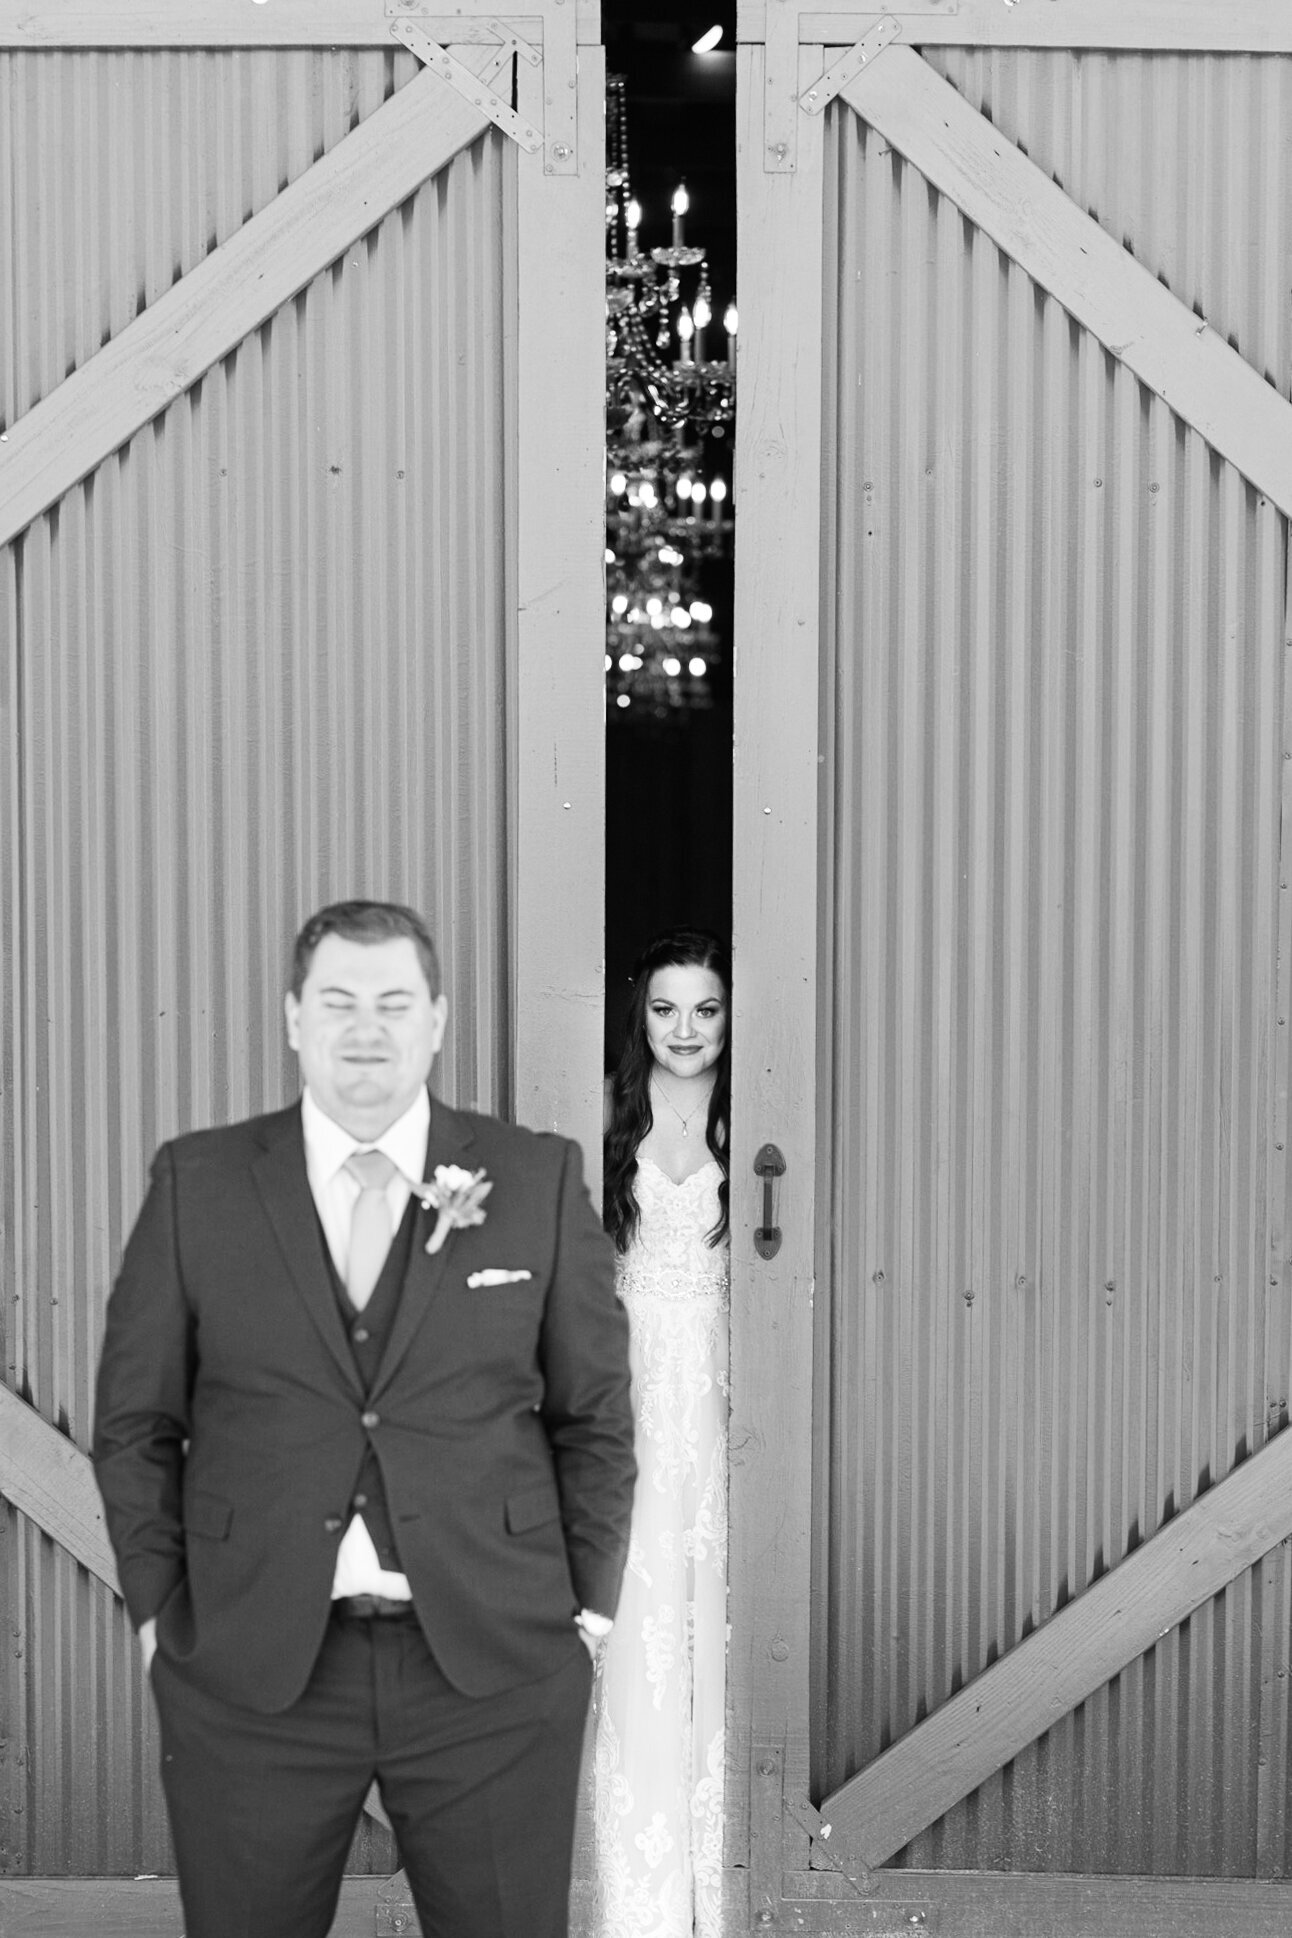 Photograph of bride and groom at their wedding in Phoenix Arizona